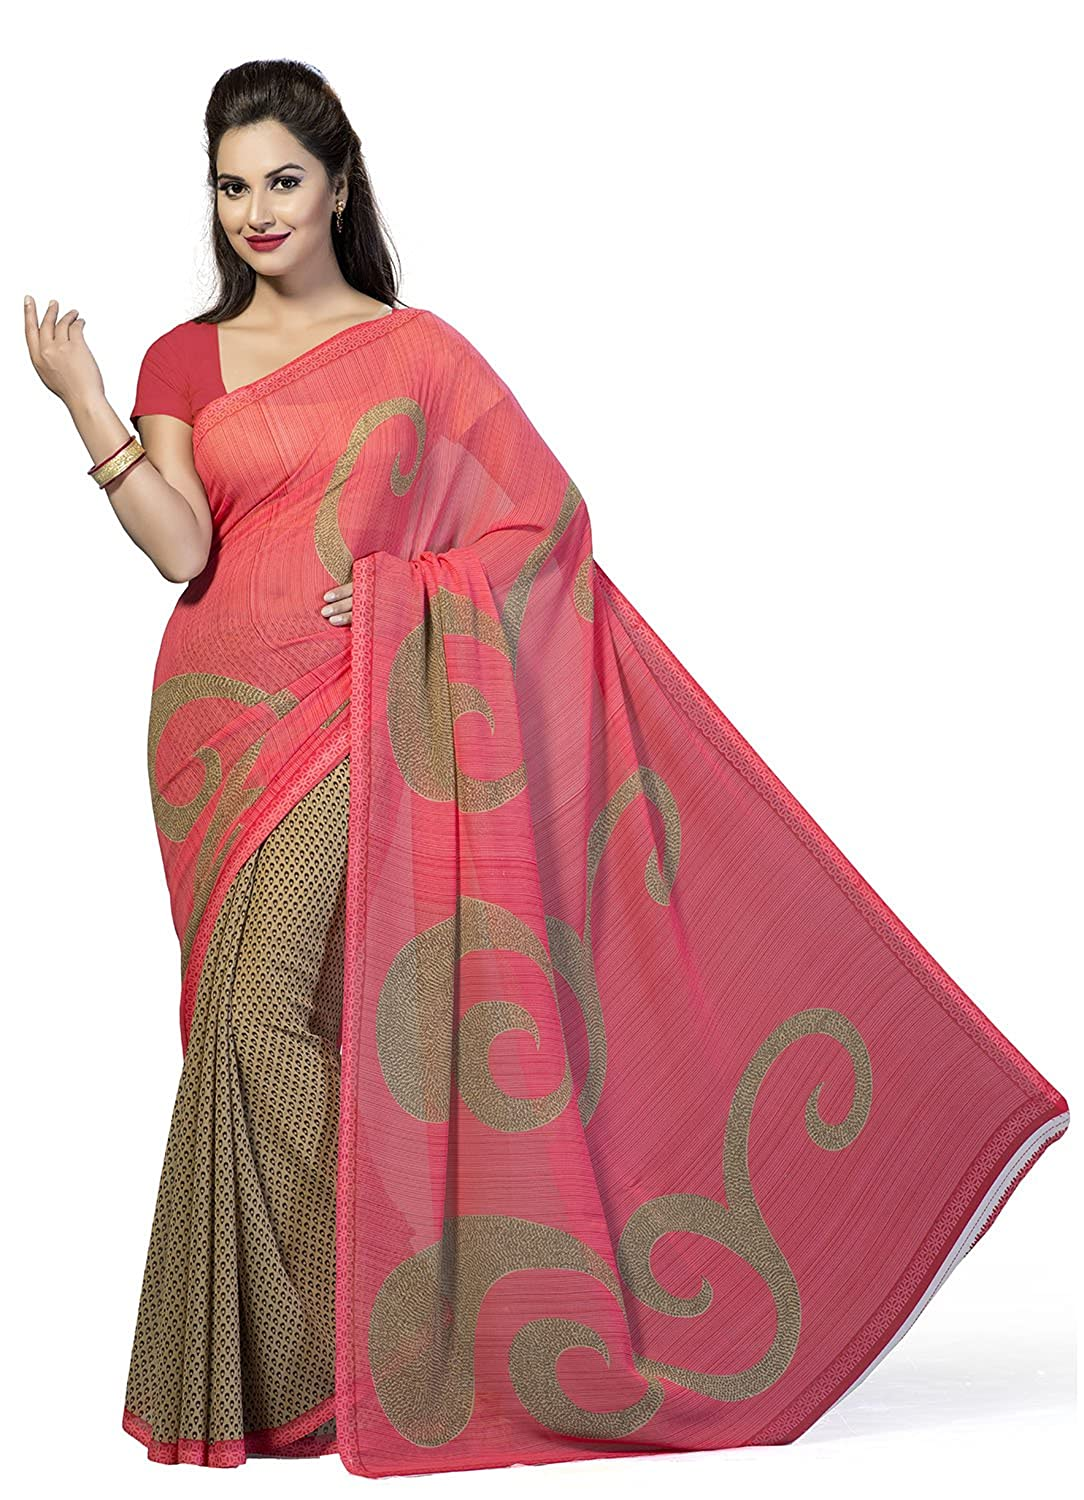 Beige & Pink Color Faux Georgette Saree With Blouse Piece